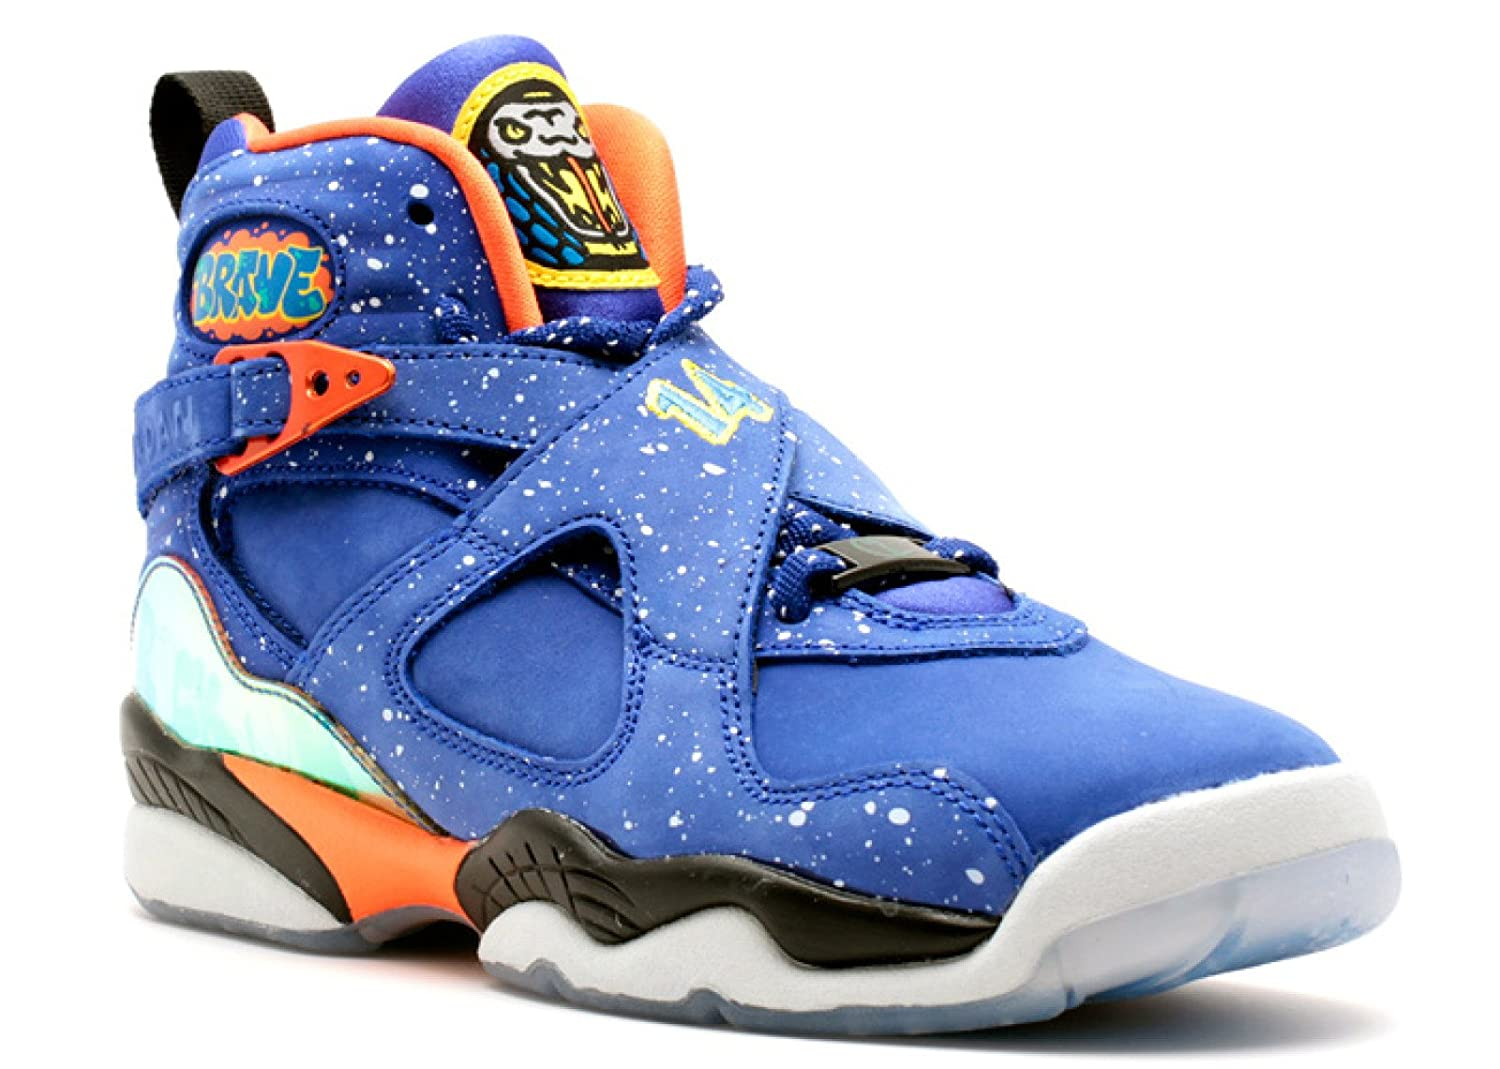 official photos ef576 50be8 Amazon.com | Jordan Air 8 Retro Doernbecher DB (GS) 729894 ...